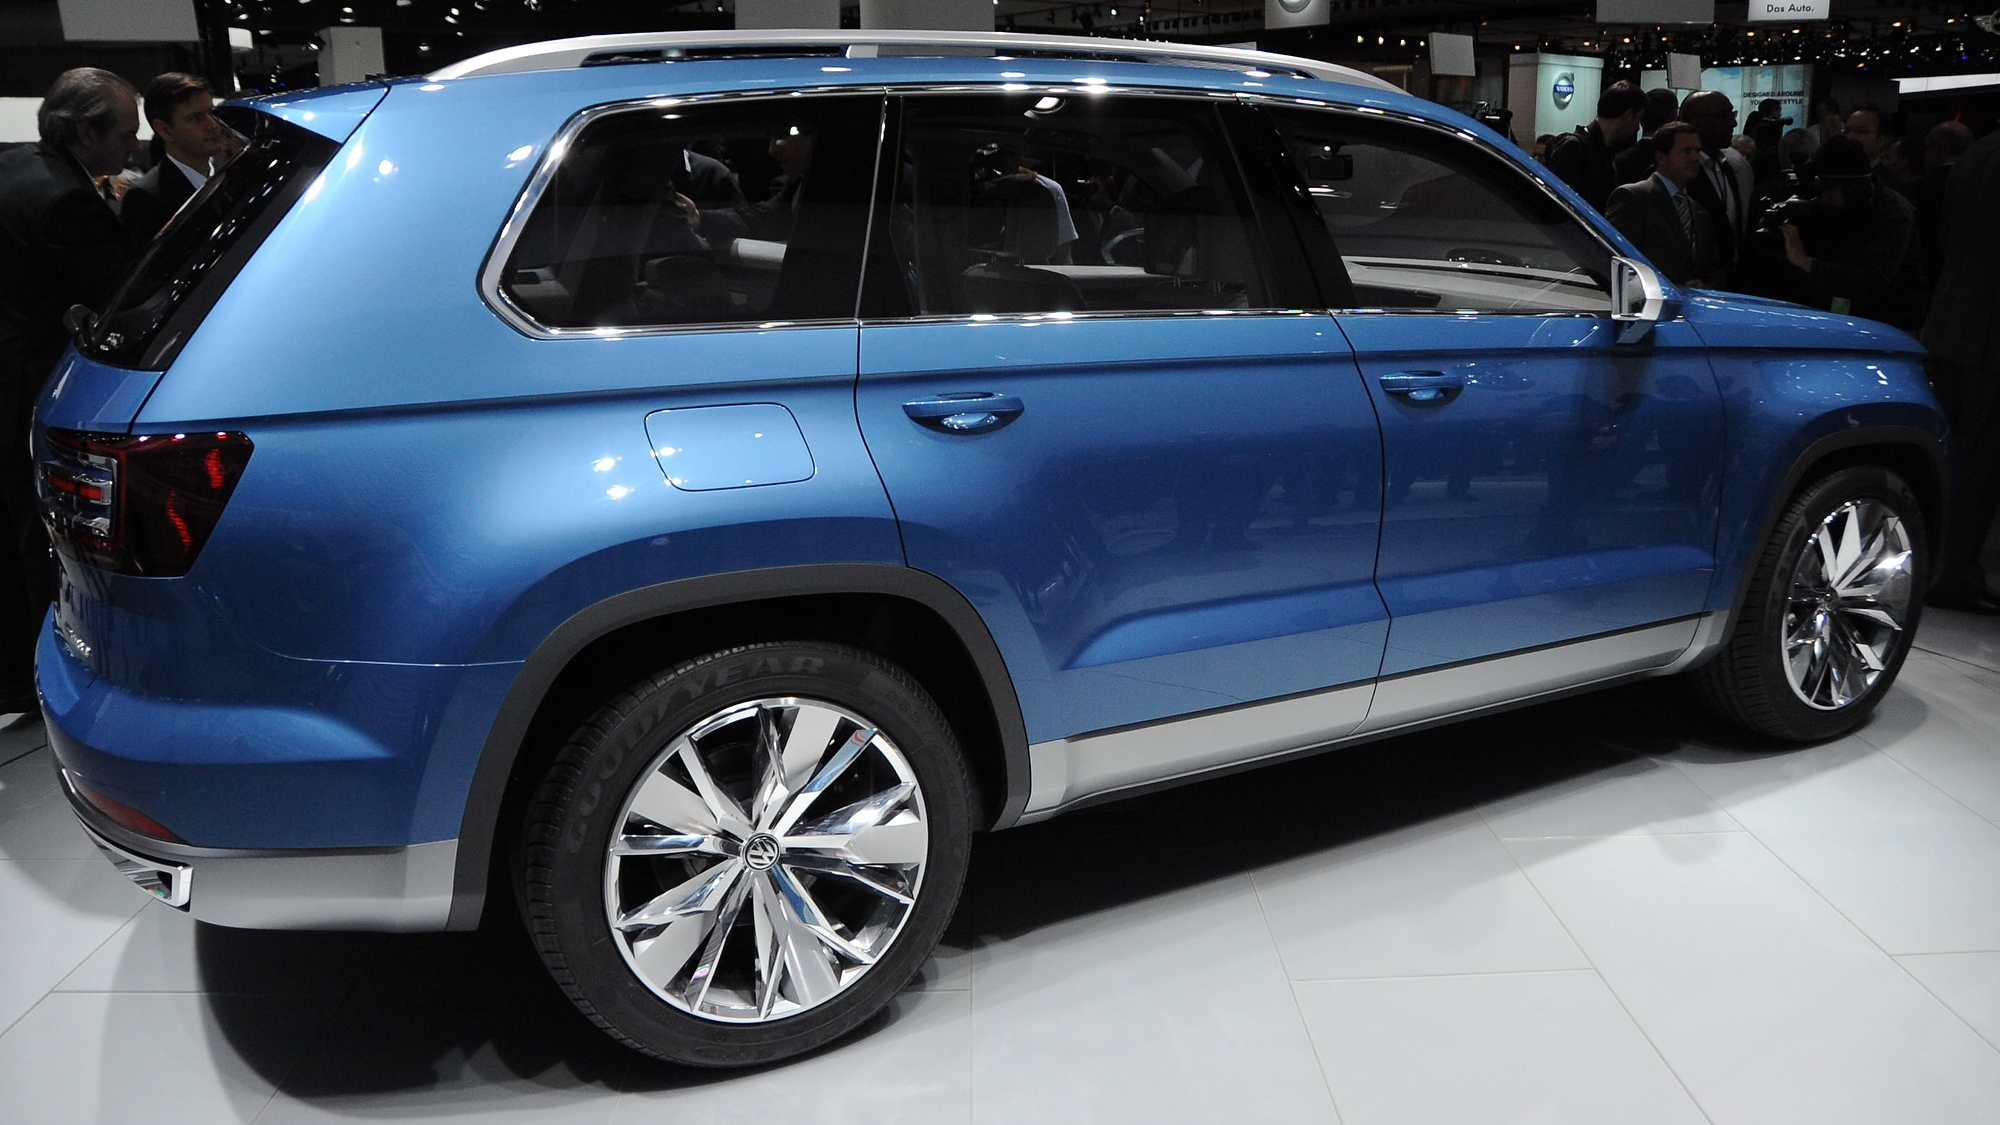 Volkswagen CrossBlue Concept at the 2013 Detroit Auto Show